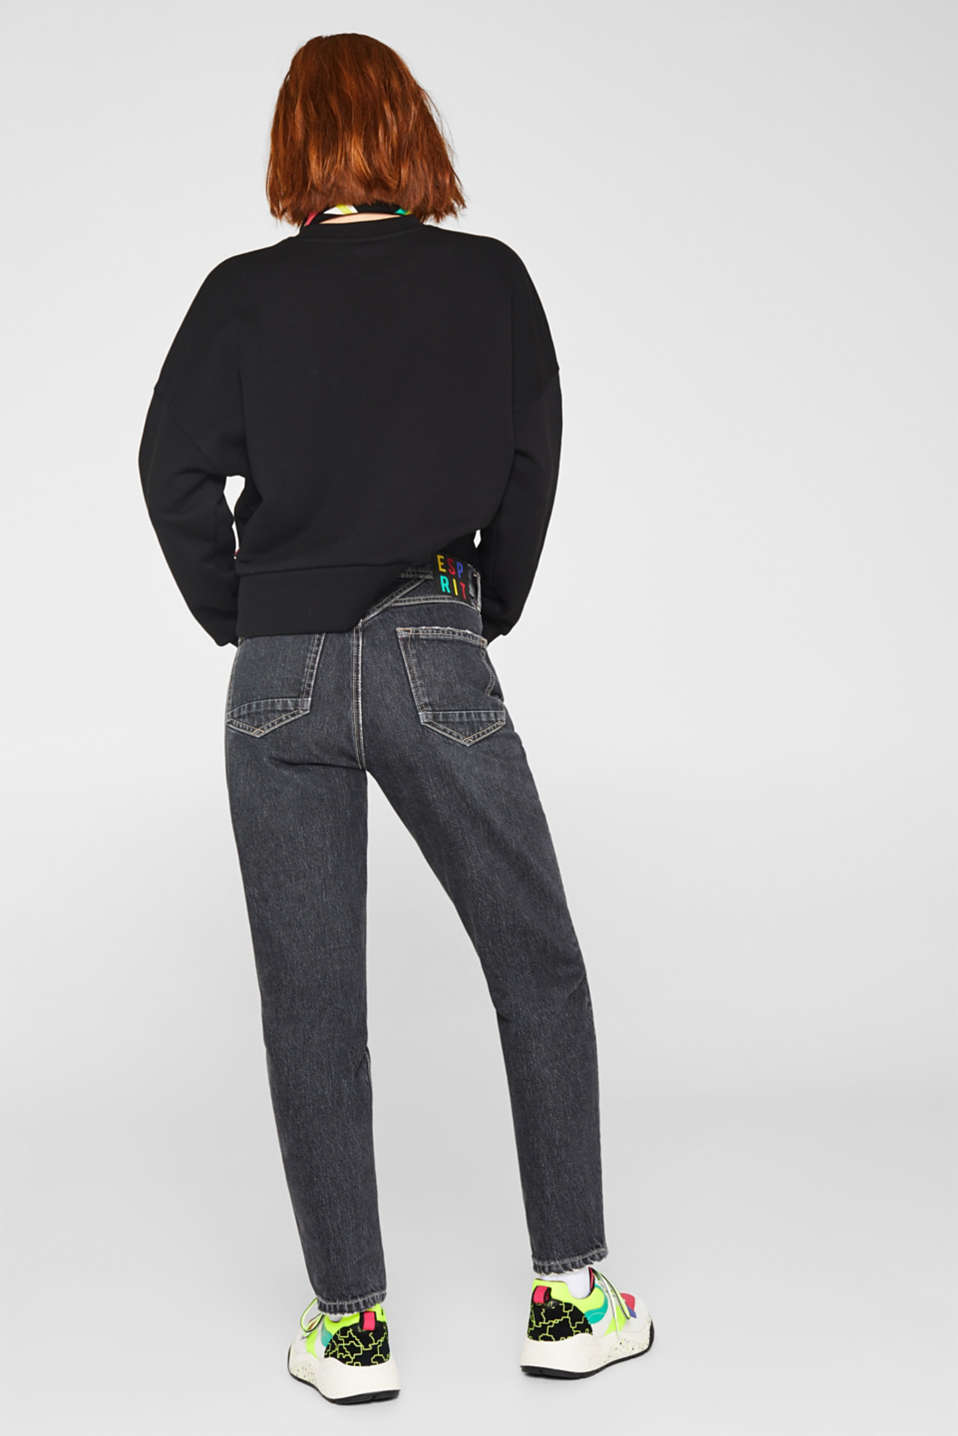 Esprit - #throwback Jean 100 % coton